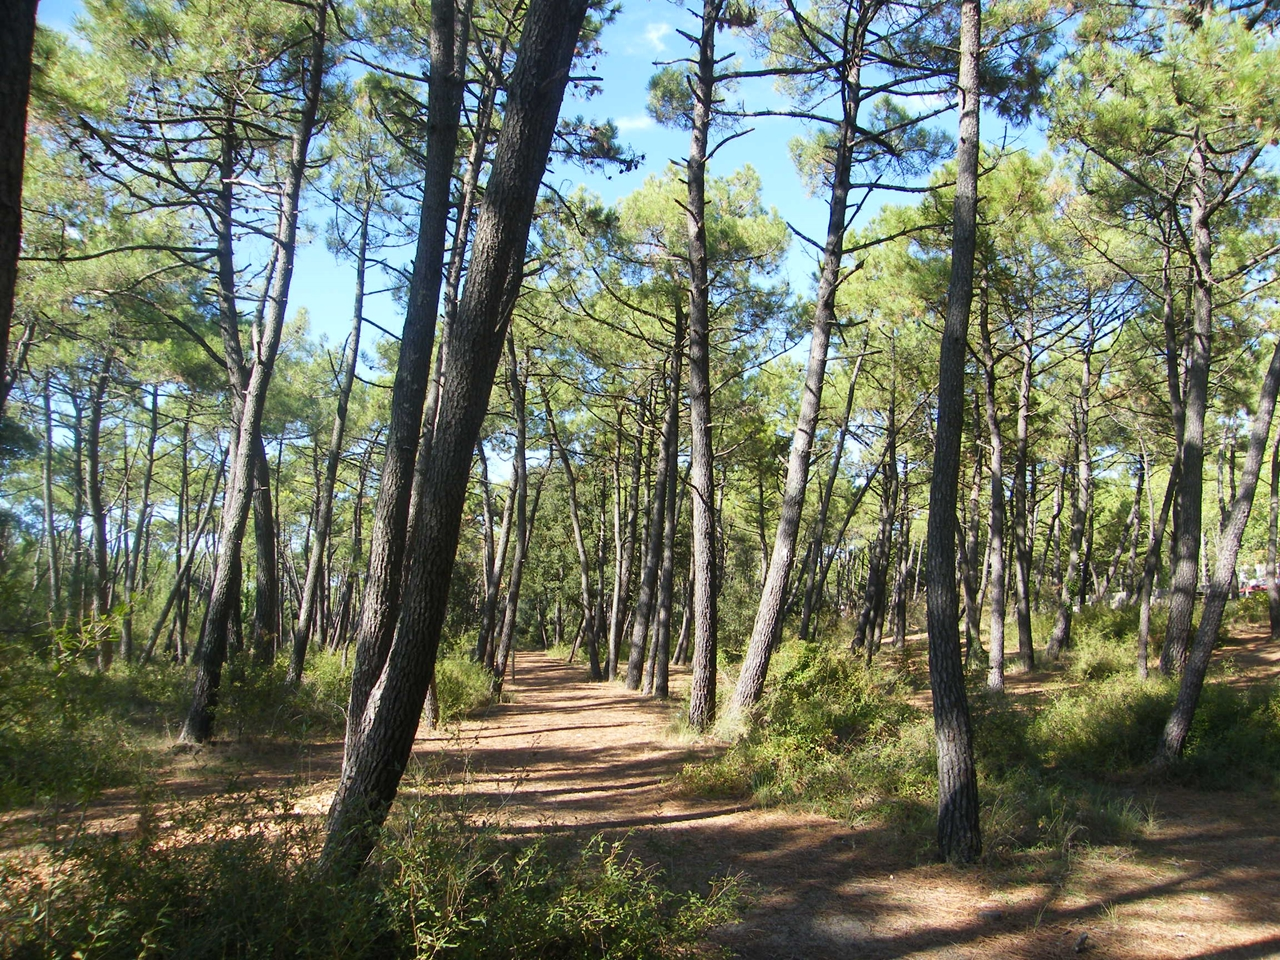 The sandy pine forests behind the dunes at La Faute